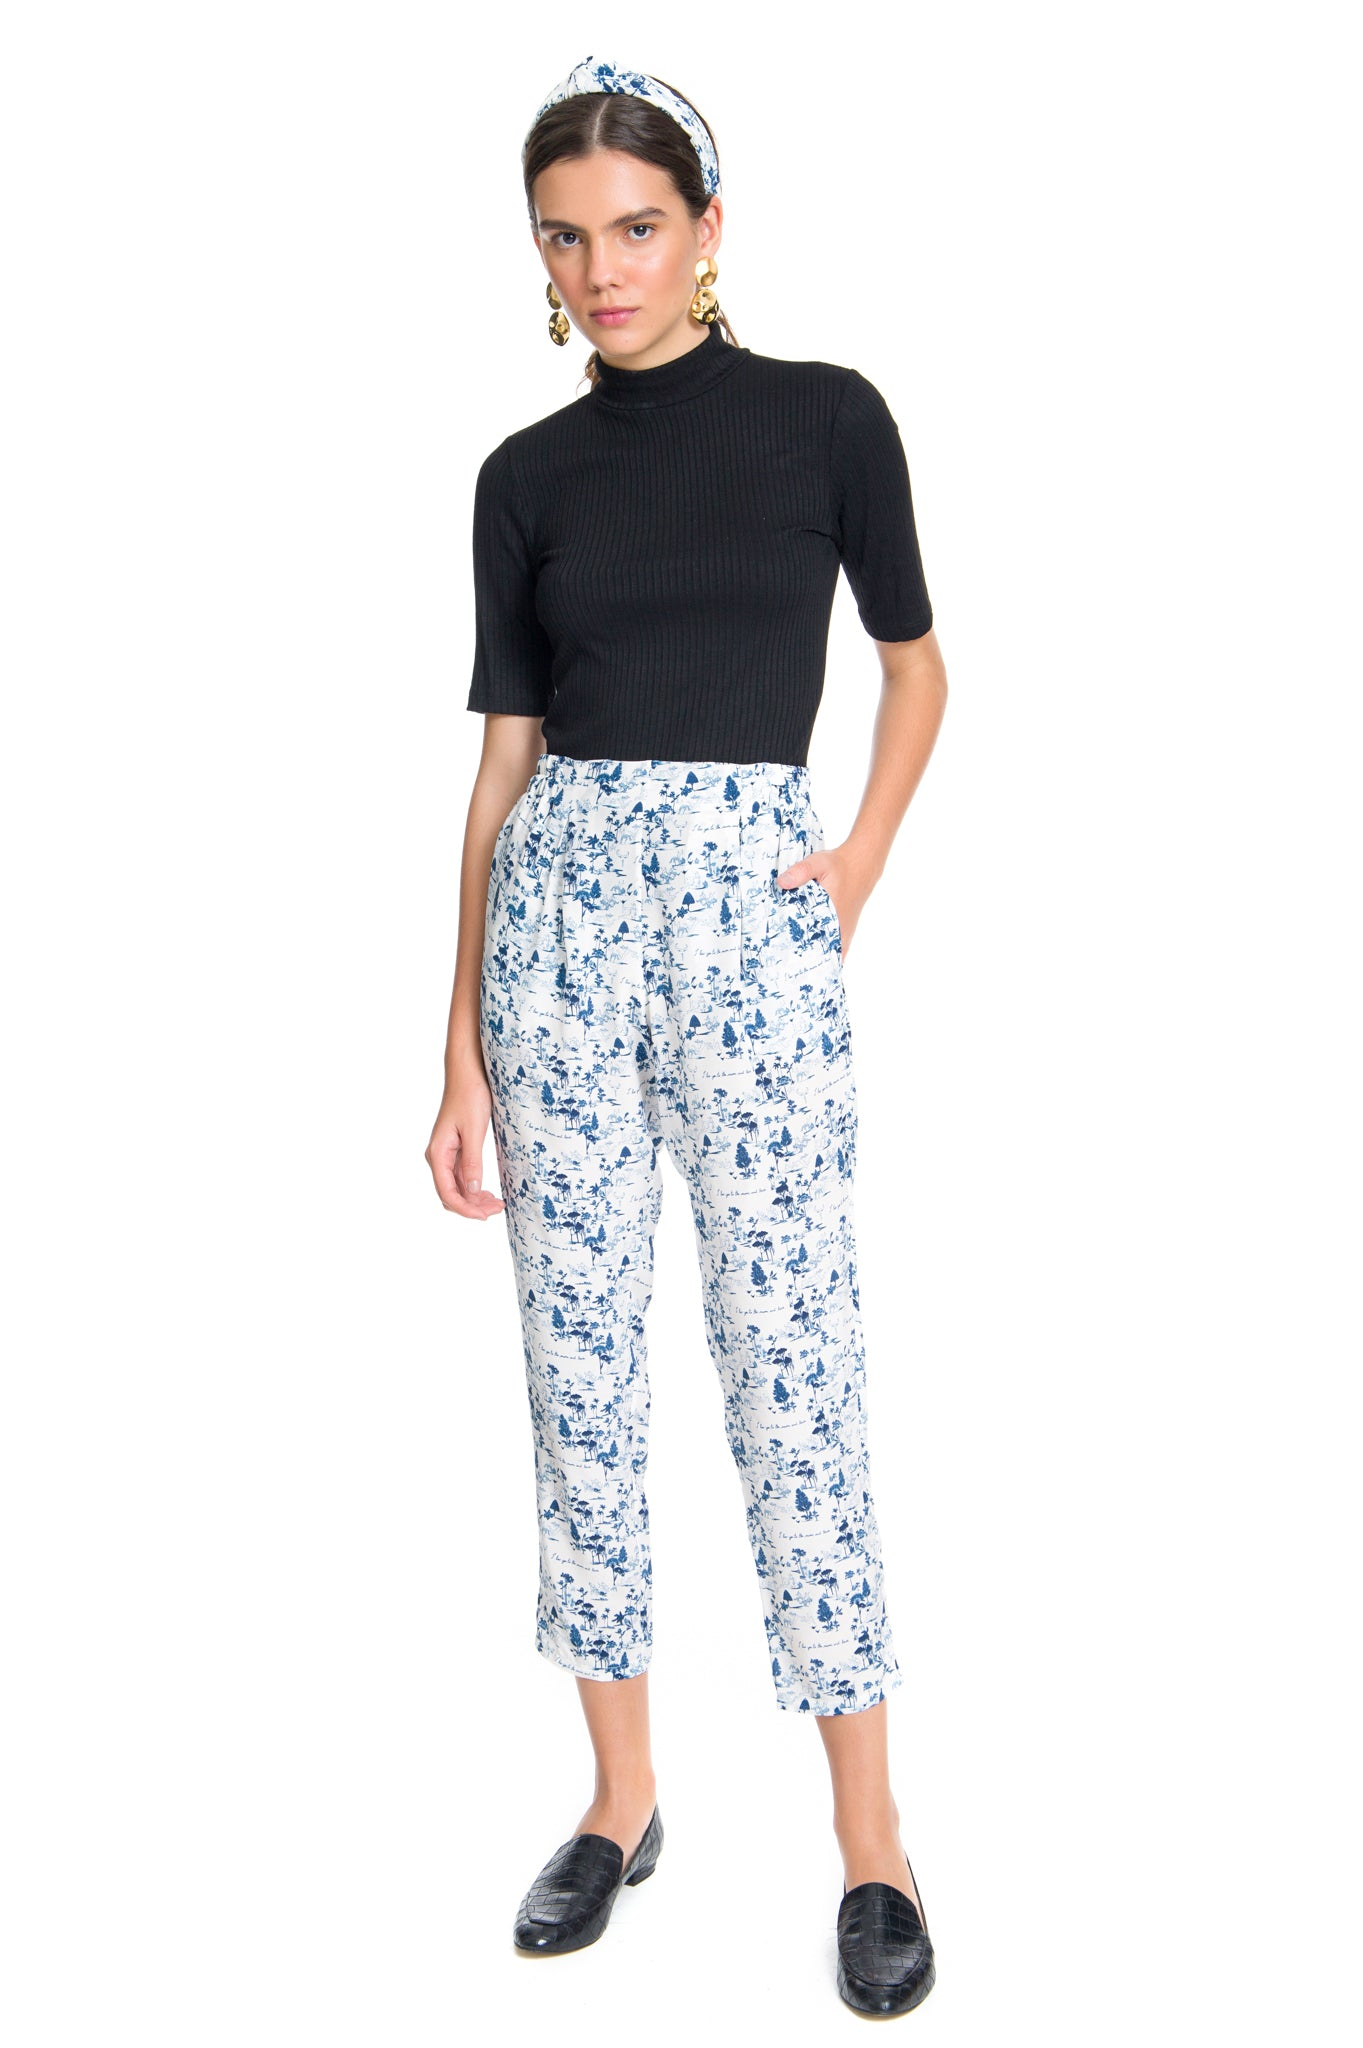 TOILE BLUE ELASTIC TROUSERS